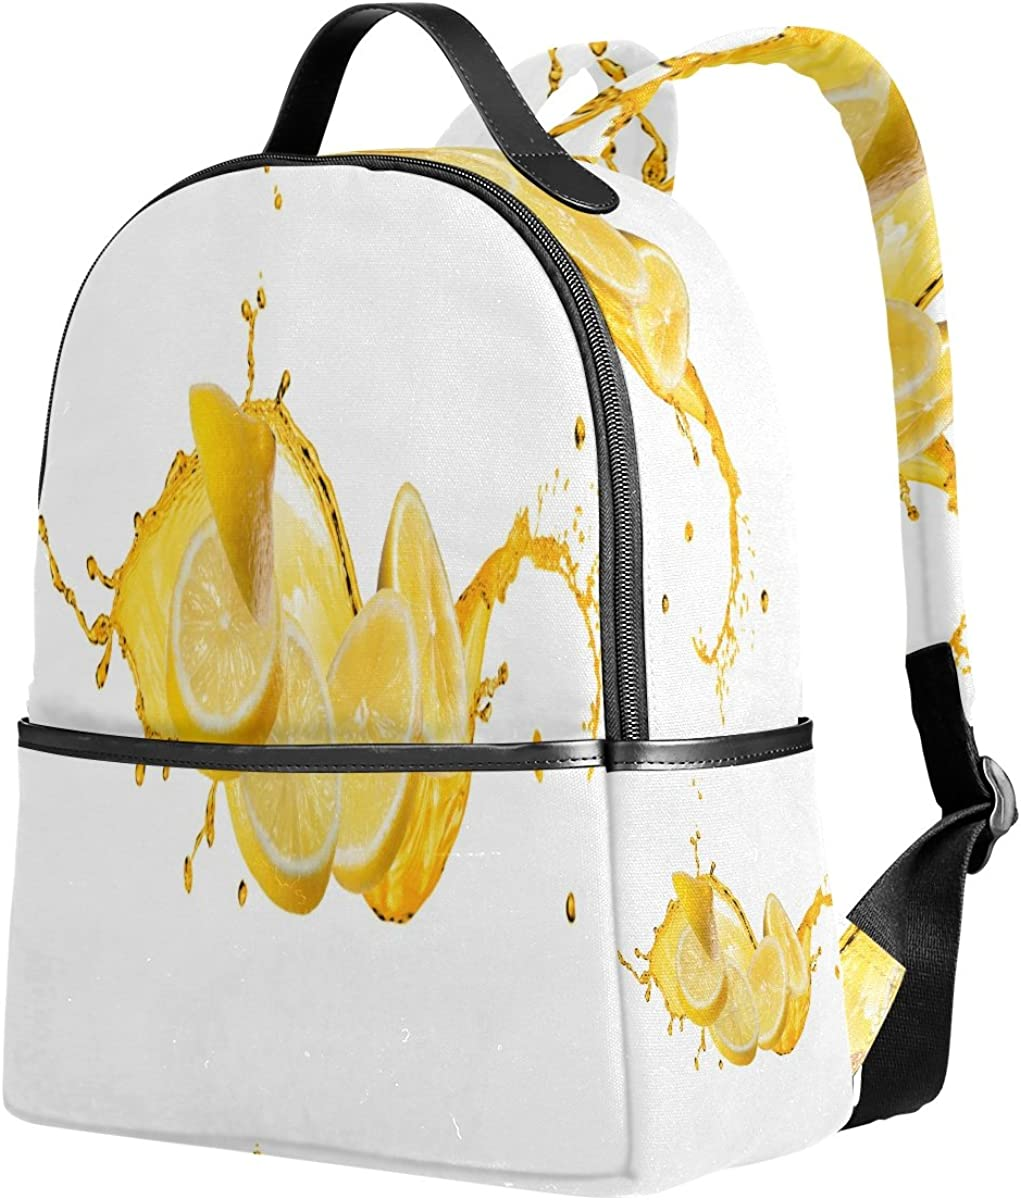 Mr.Weng Lemon Puzzle Printed Canvas Backpack For Girl and Children